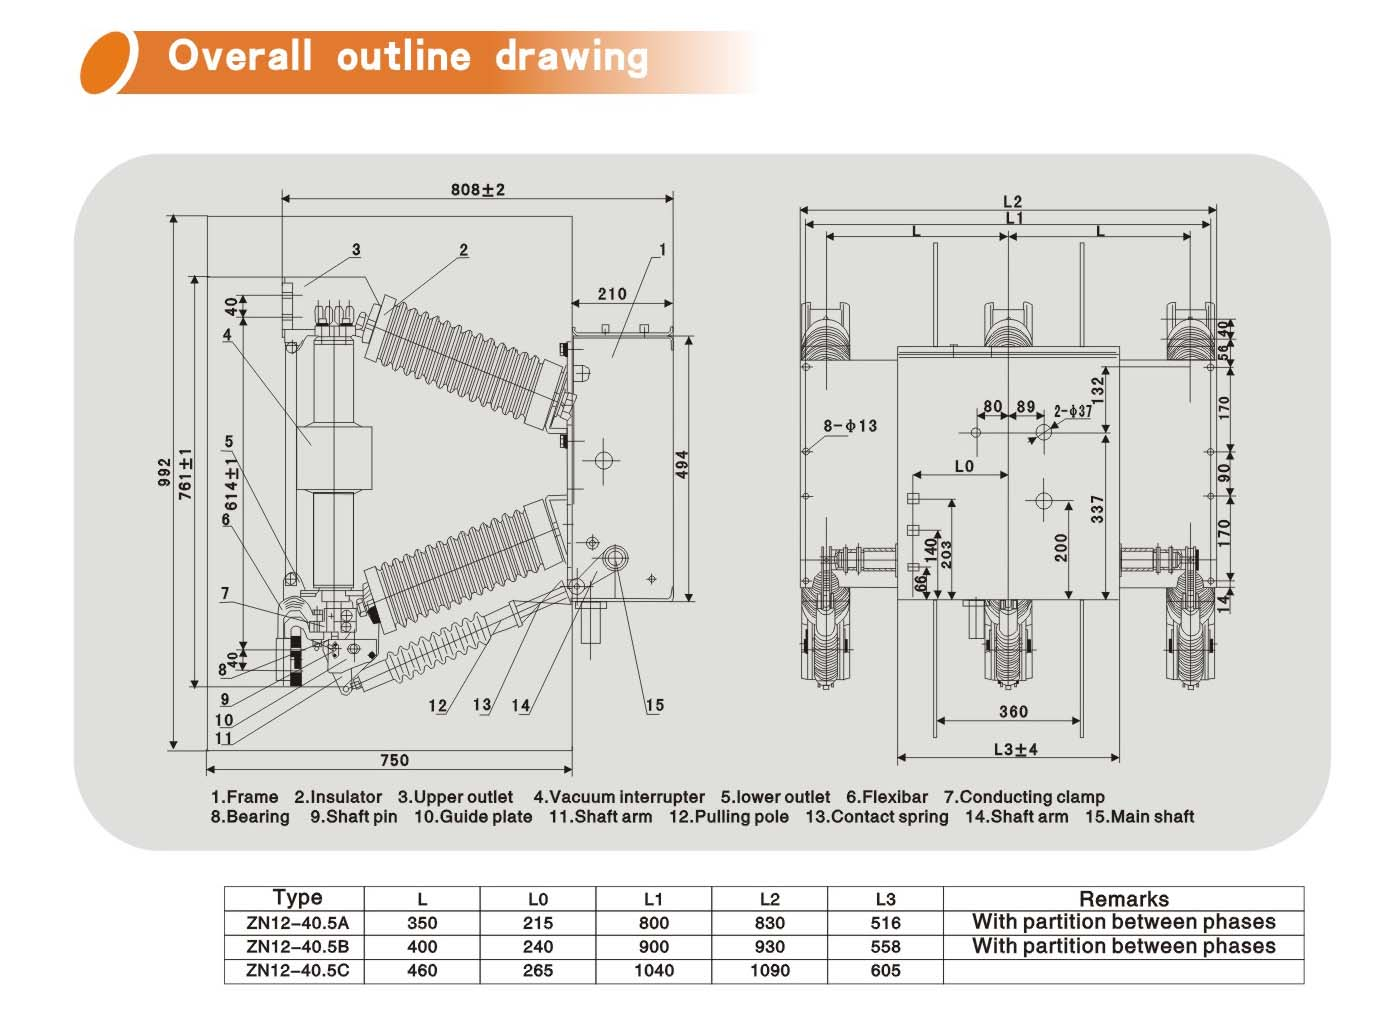 ZN12-40.5/1250-25 Type VCB Outline Drawing